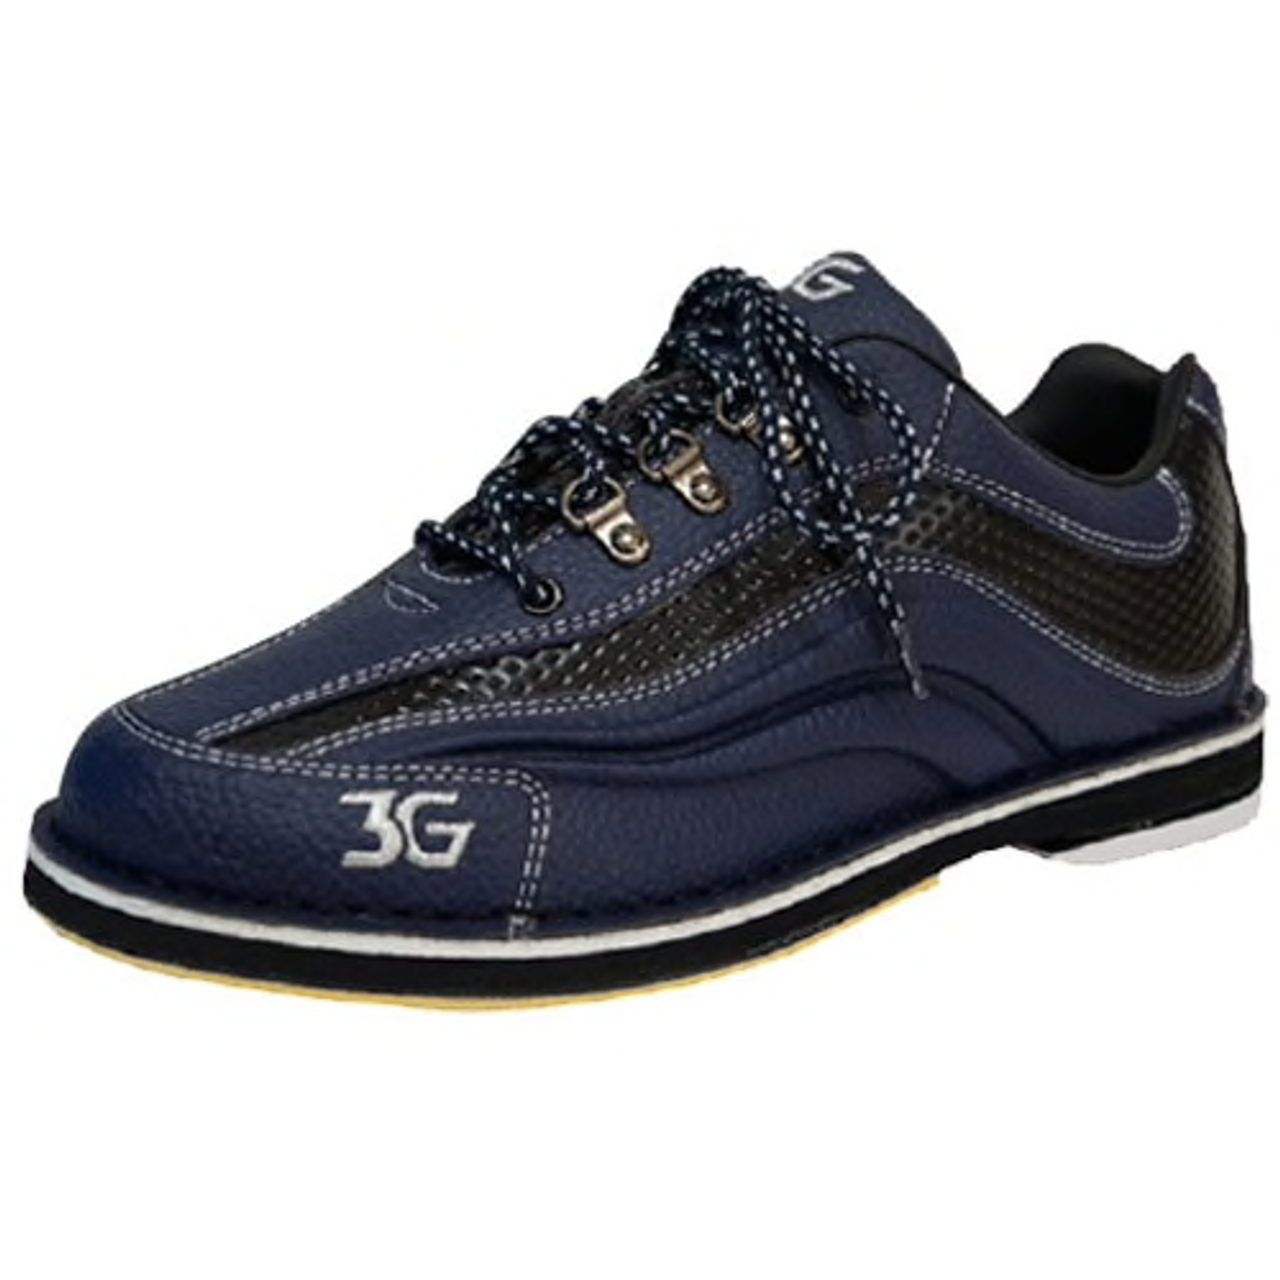 KR Strikeforce Mens Raptor Performance Bowling Shoes Right Hand